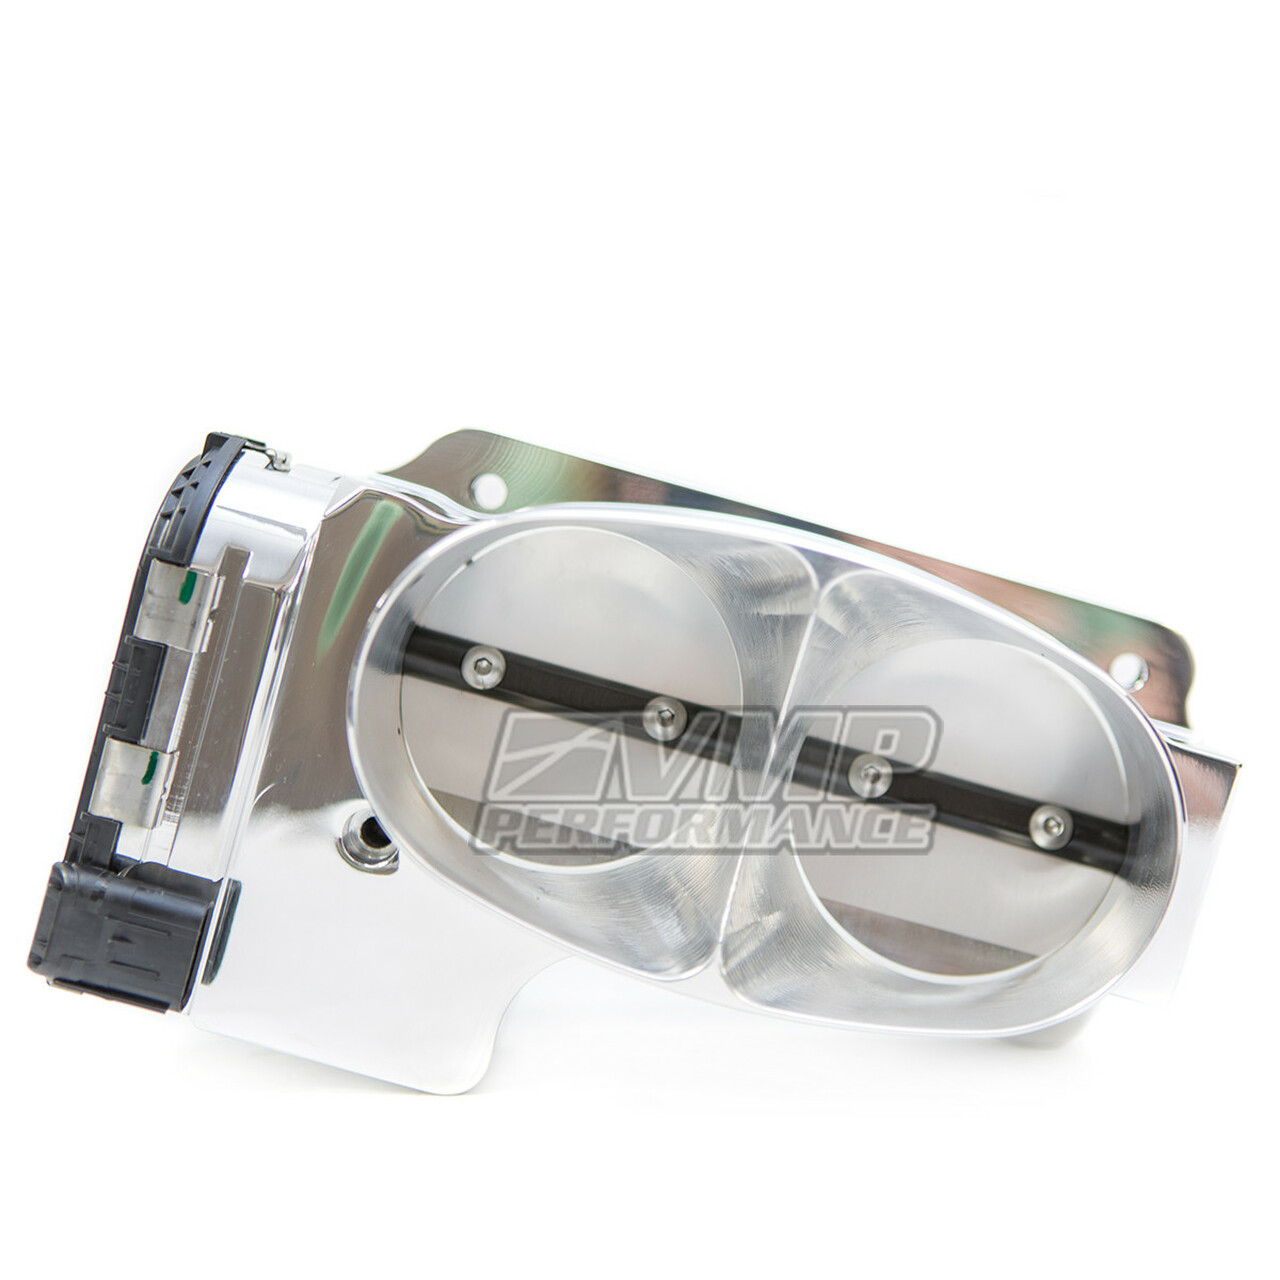 VMP TwinJet 69mm Throttle Body for 2018+ 5.0L with VMP Supercharger (VMP-TJ69-JL)